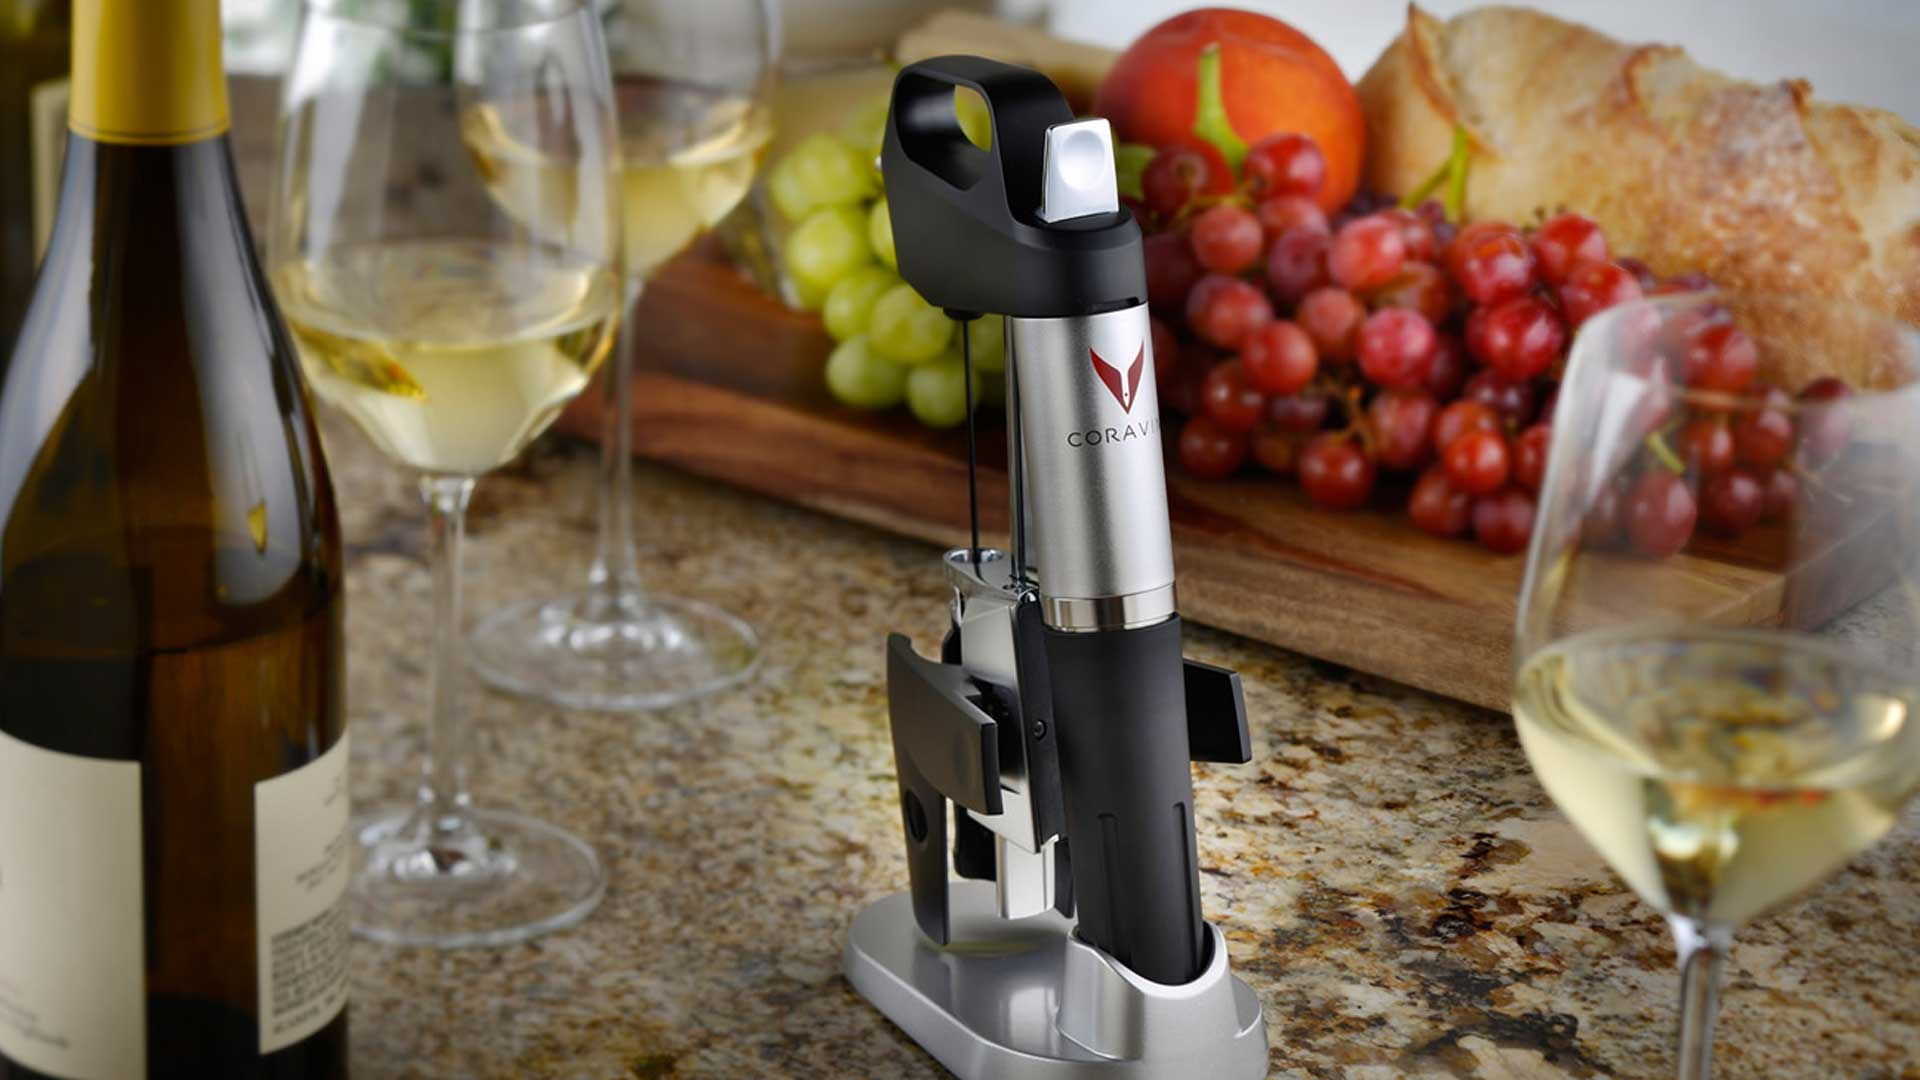 Coravin Table